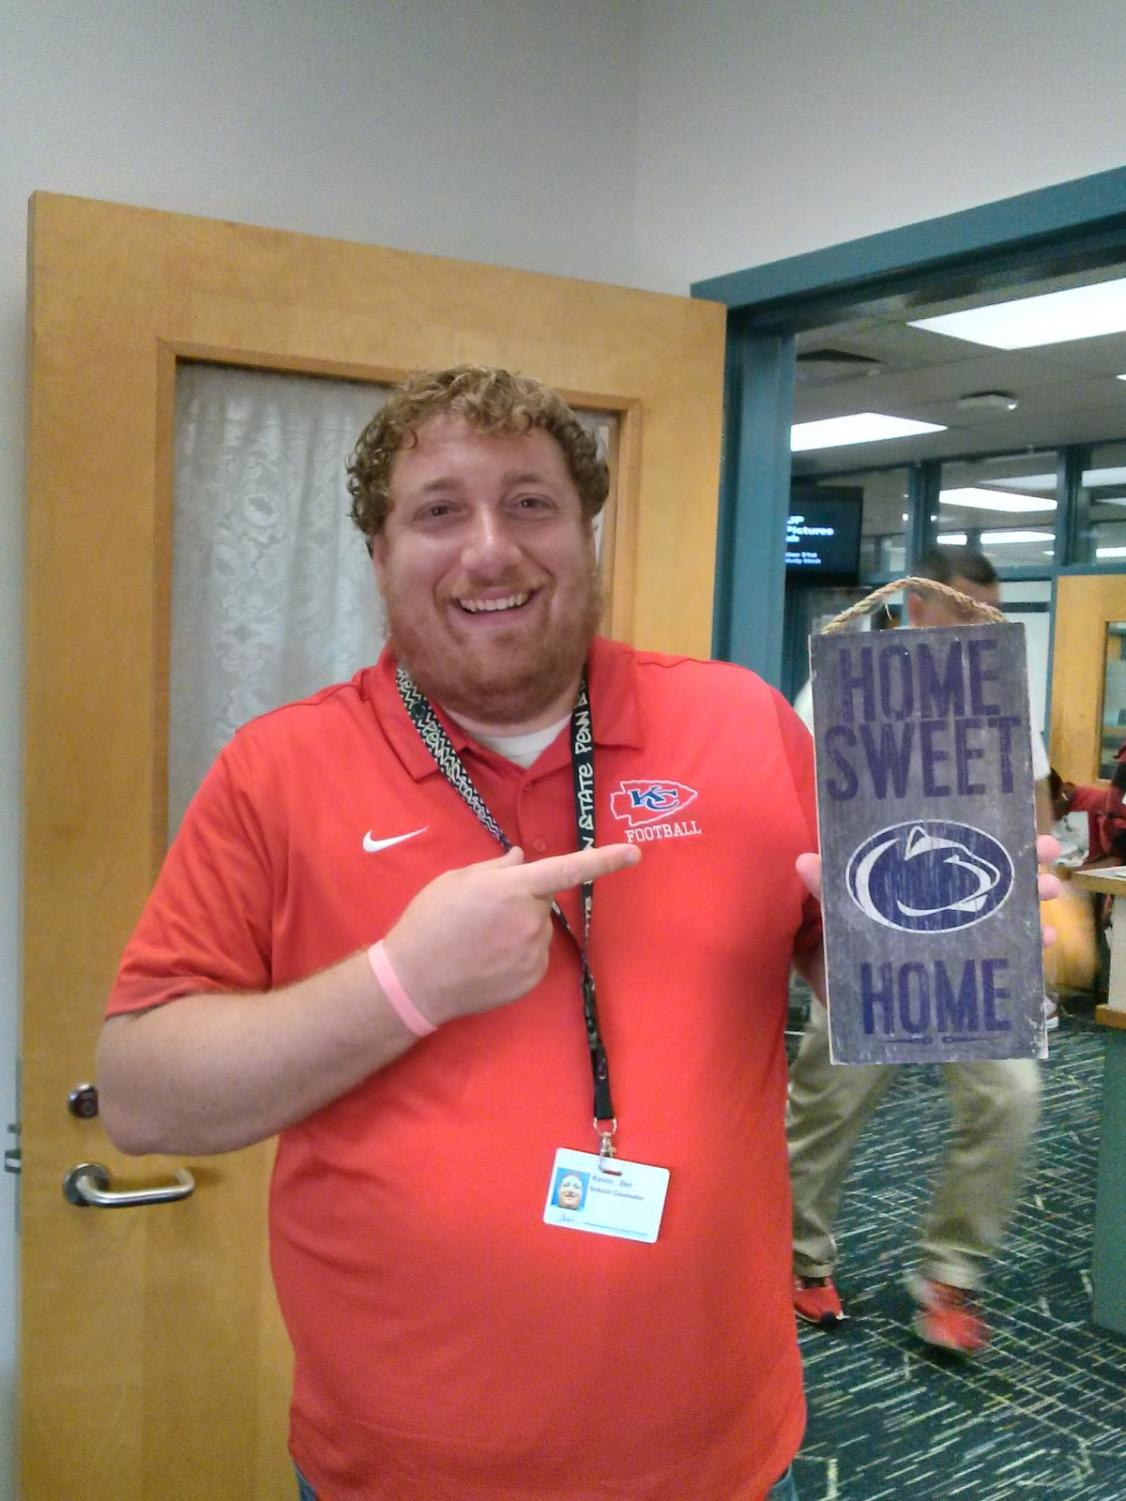 """Go to class!"" Ber warns as he shares his tips for college with students. Kevin Ber,  who went to Penn State, was inspired to become a school counselor through his own experience of not having many resources to help with college prep."